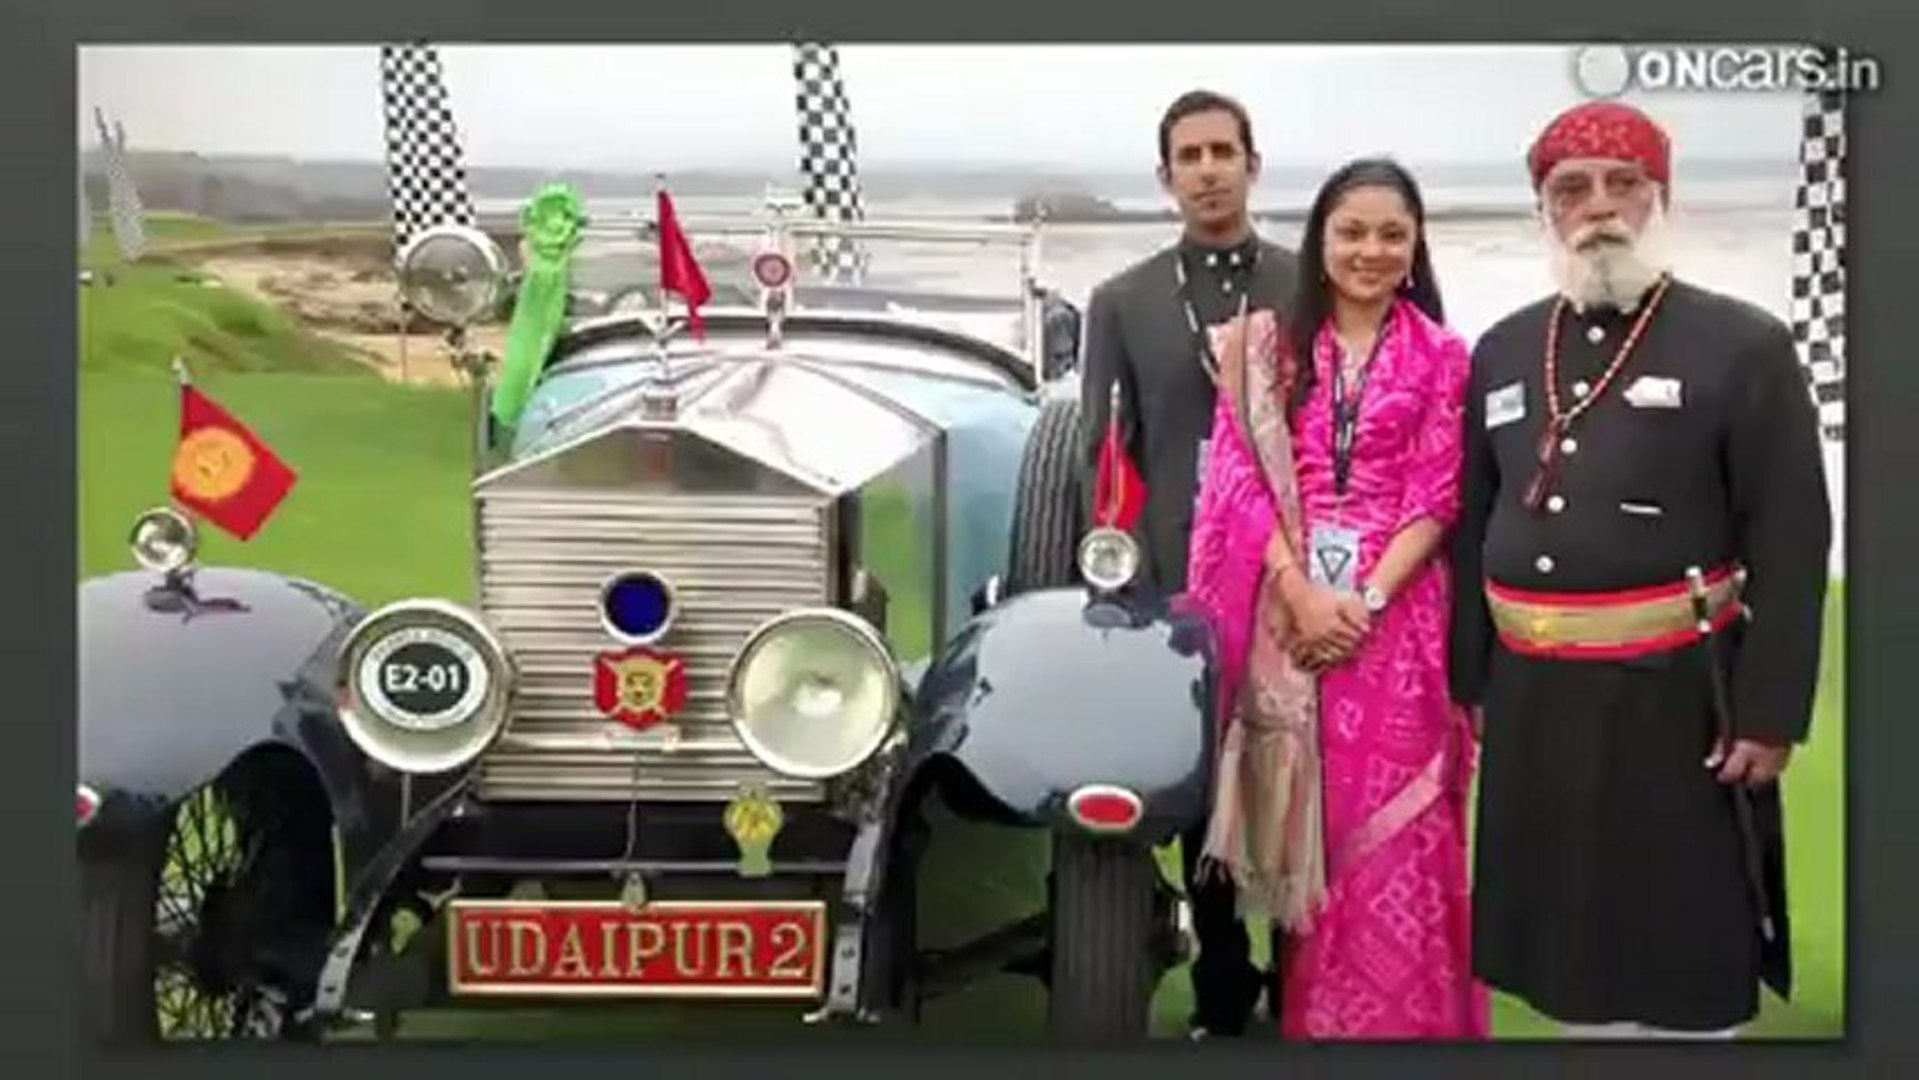 1924 Rolls Royce 20 HP from Udaipur wins trophy at the Pebble Beach Concours d'Elegance.mp4